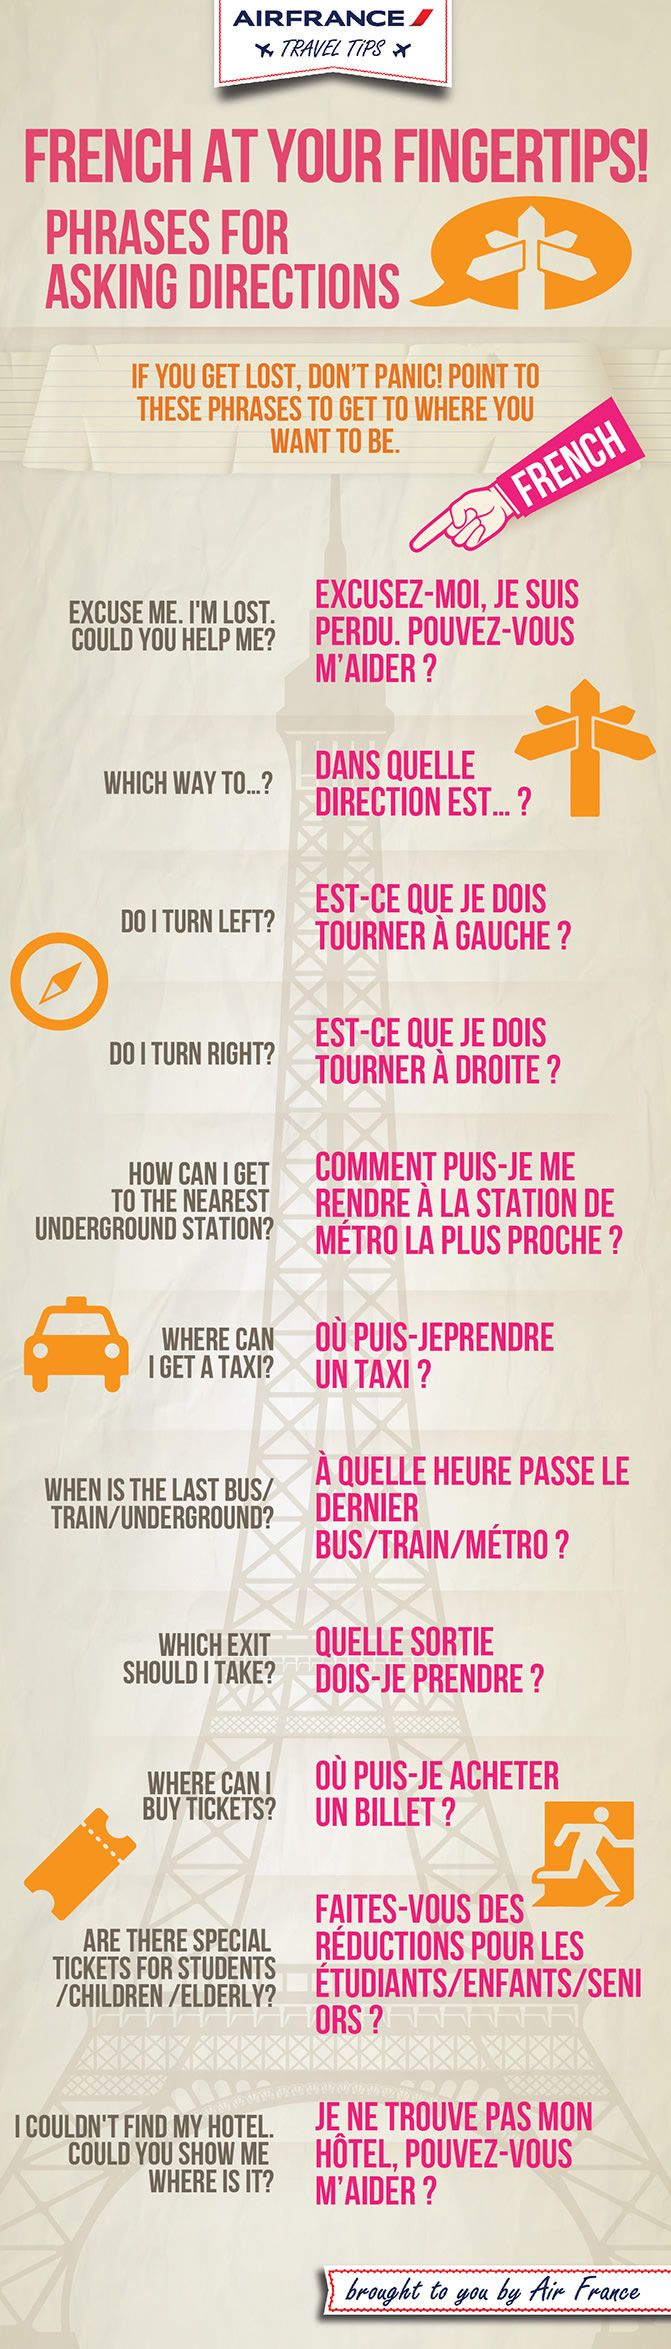 French at your fingertips teaching or learning french with common phrases to use while shopping in PAris #airfrance tips